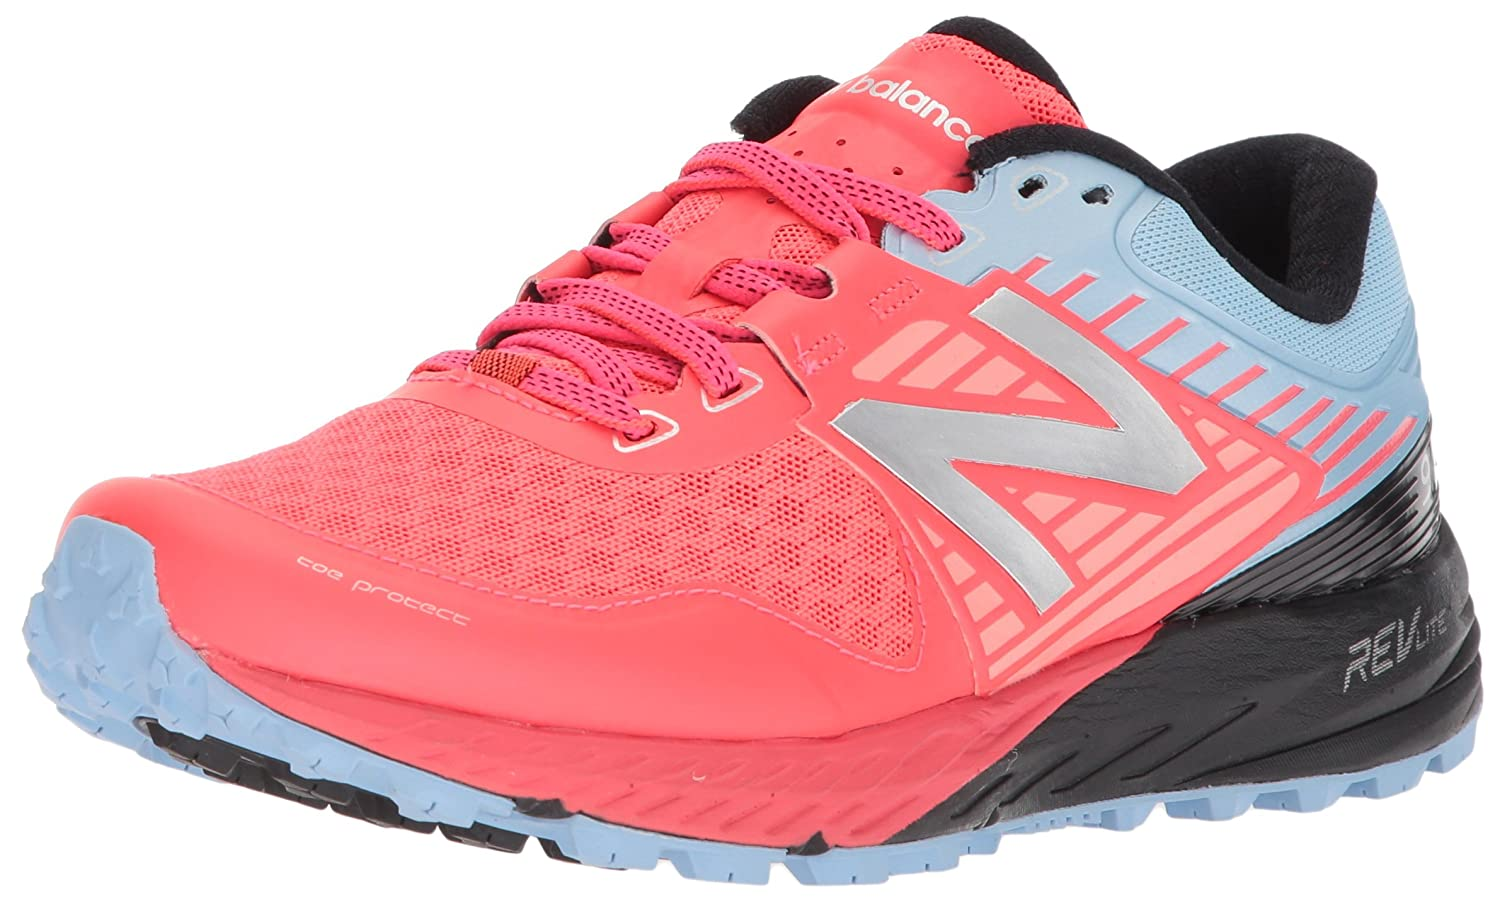 New Balance Women's 910 V4 Trail Running Shoe B06XS9TGJK 55 B US|Vivid Coral/Clear Sky